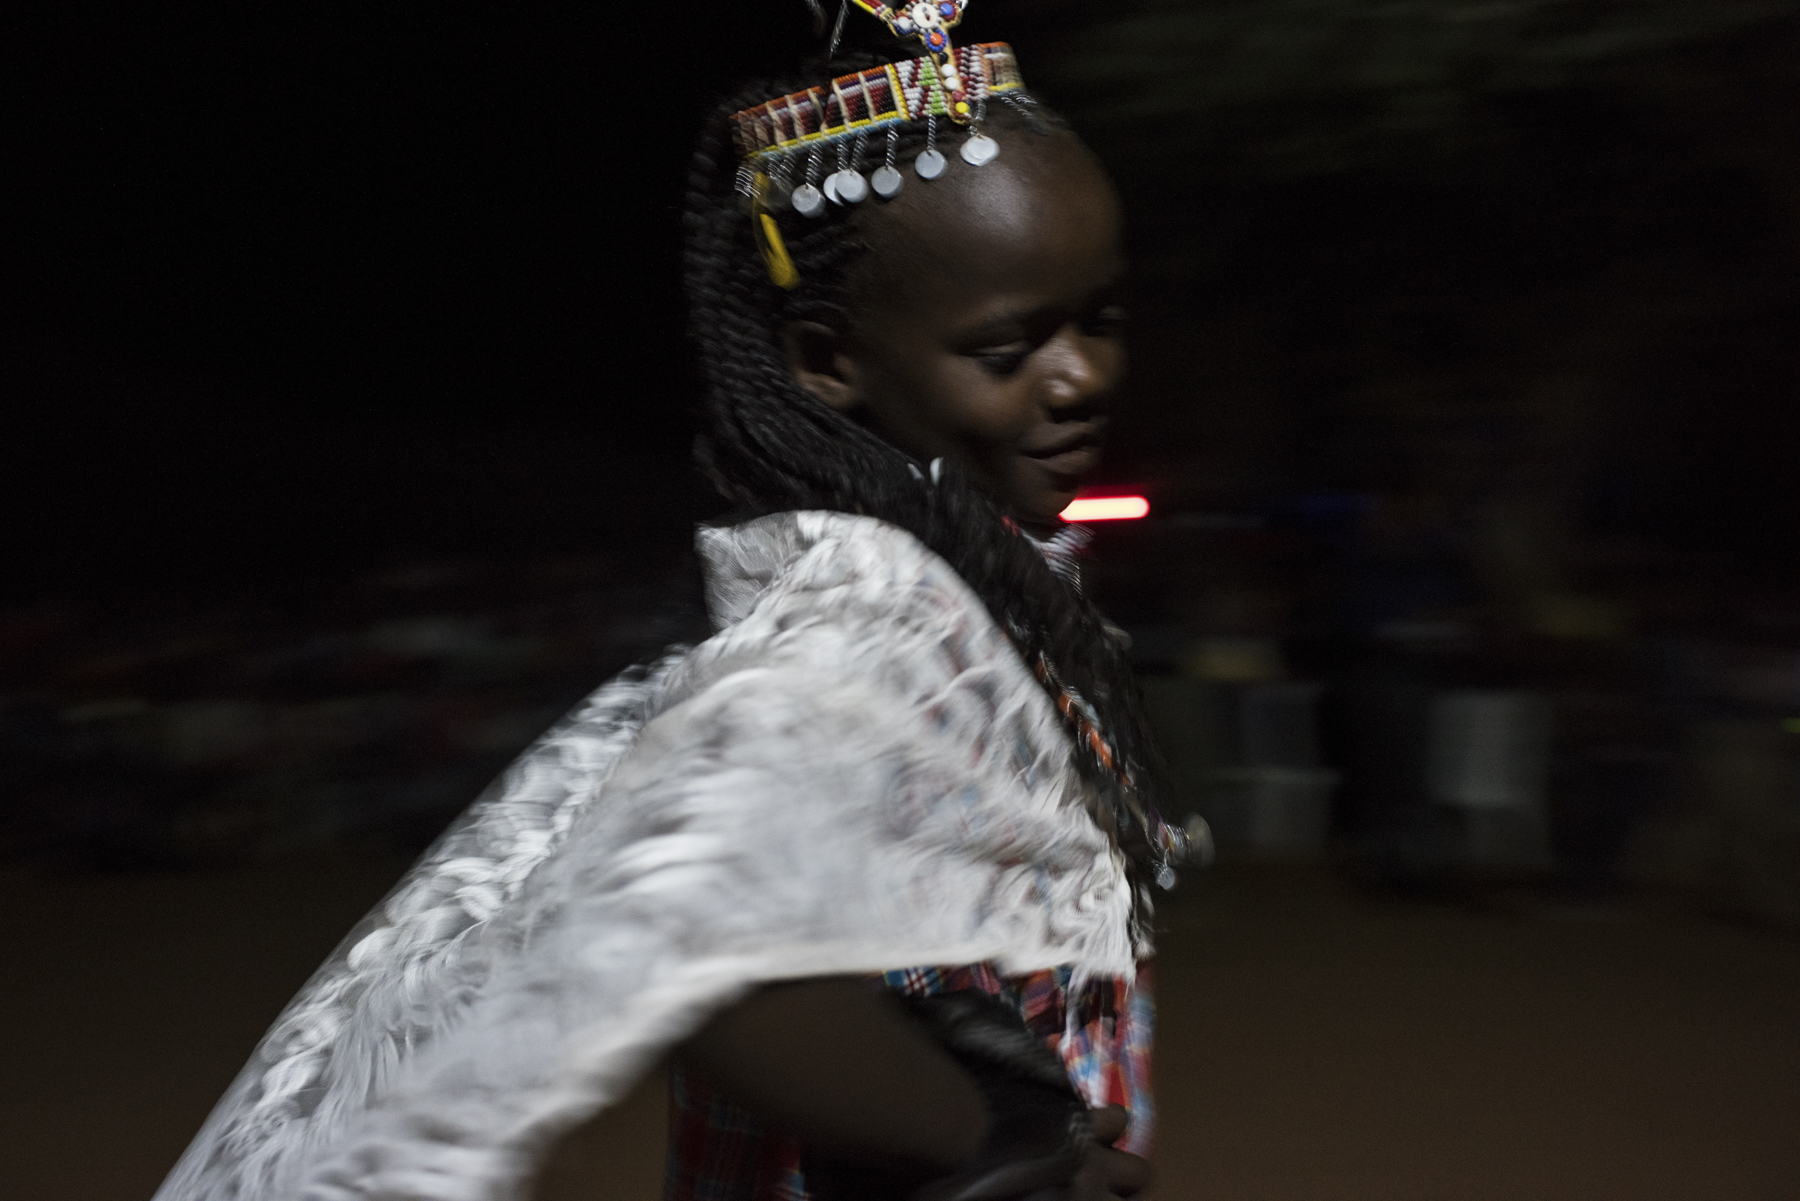 Kenya, Amboseli, 07 December 2017